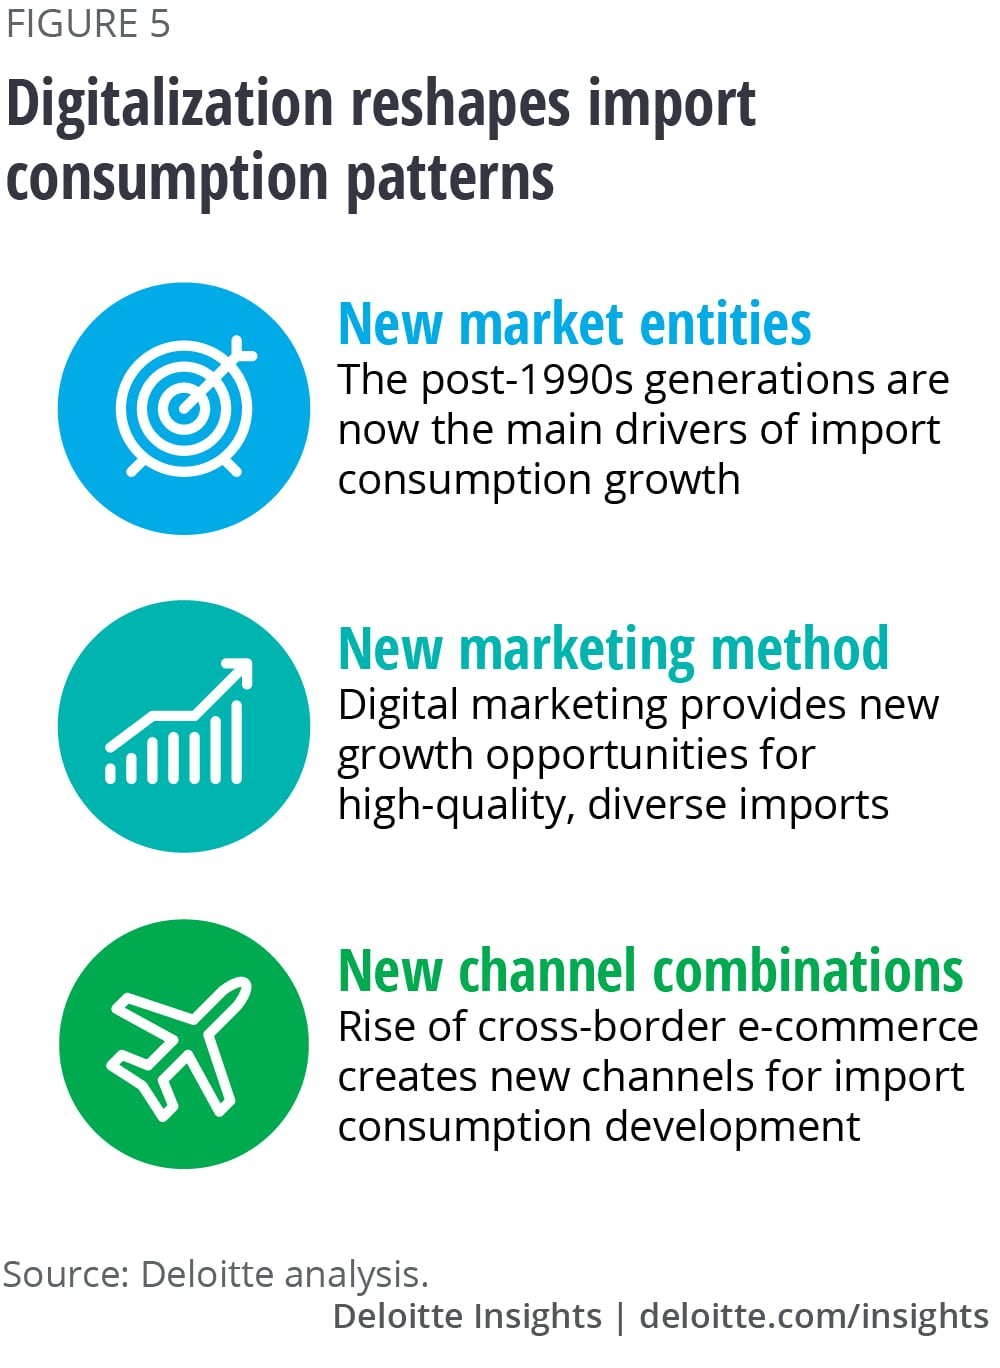 Digitalization reshapes import consumption patterns